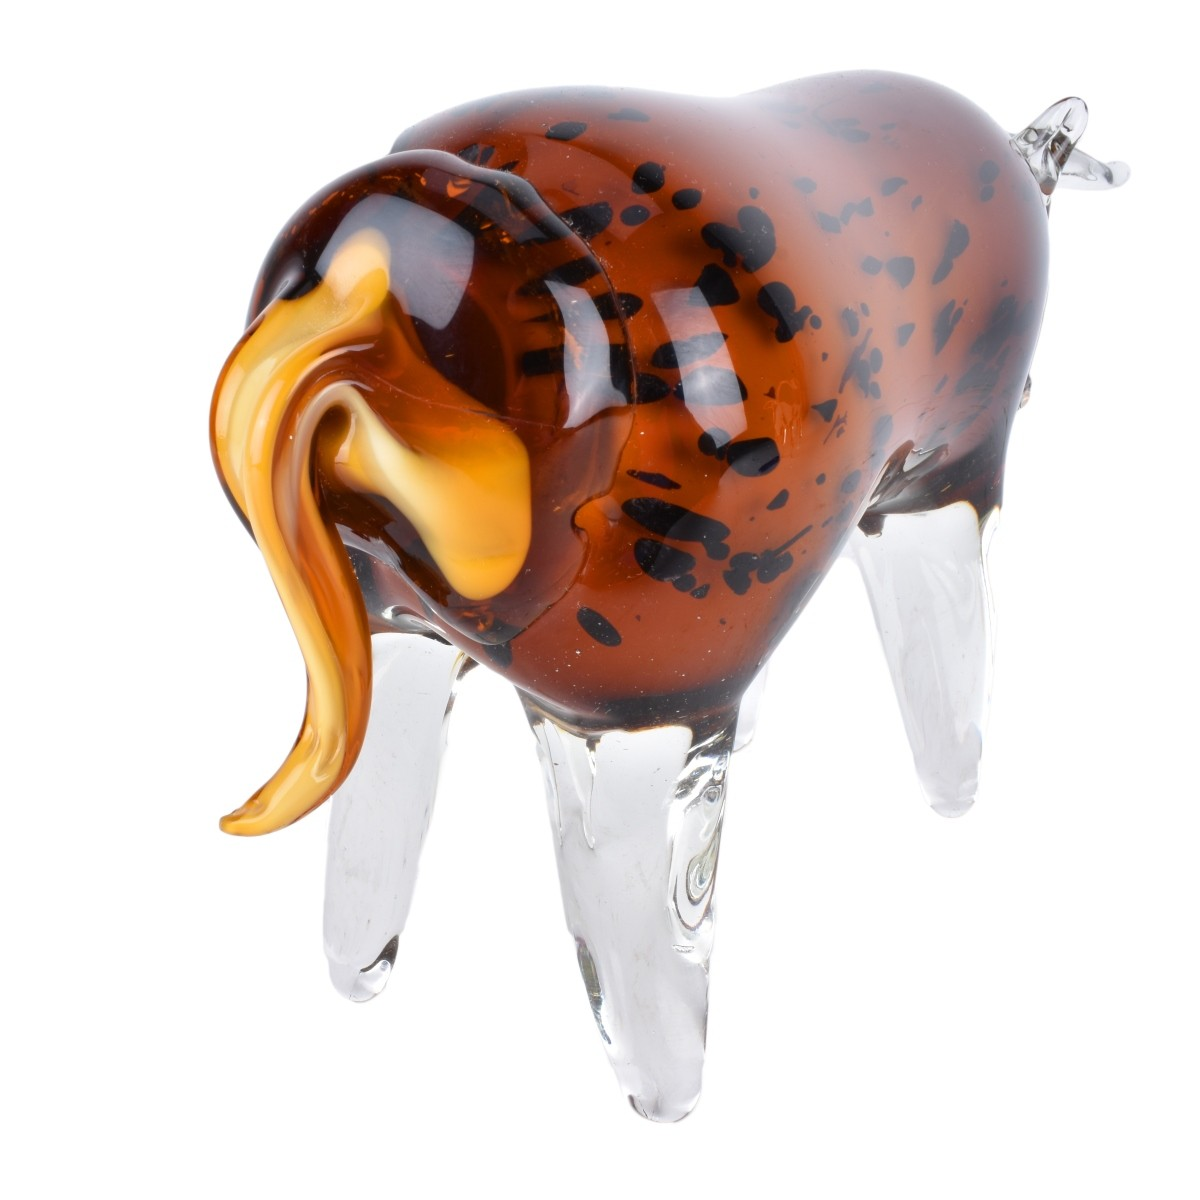 Collection of 3 Contemporary Art Glass Bull Figure